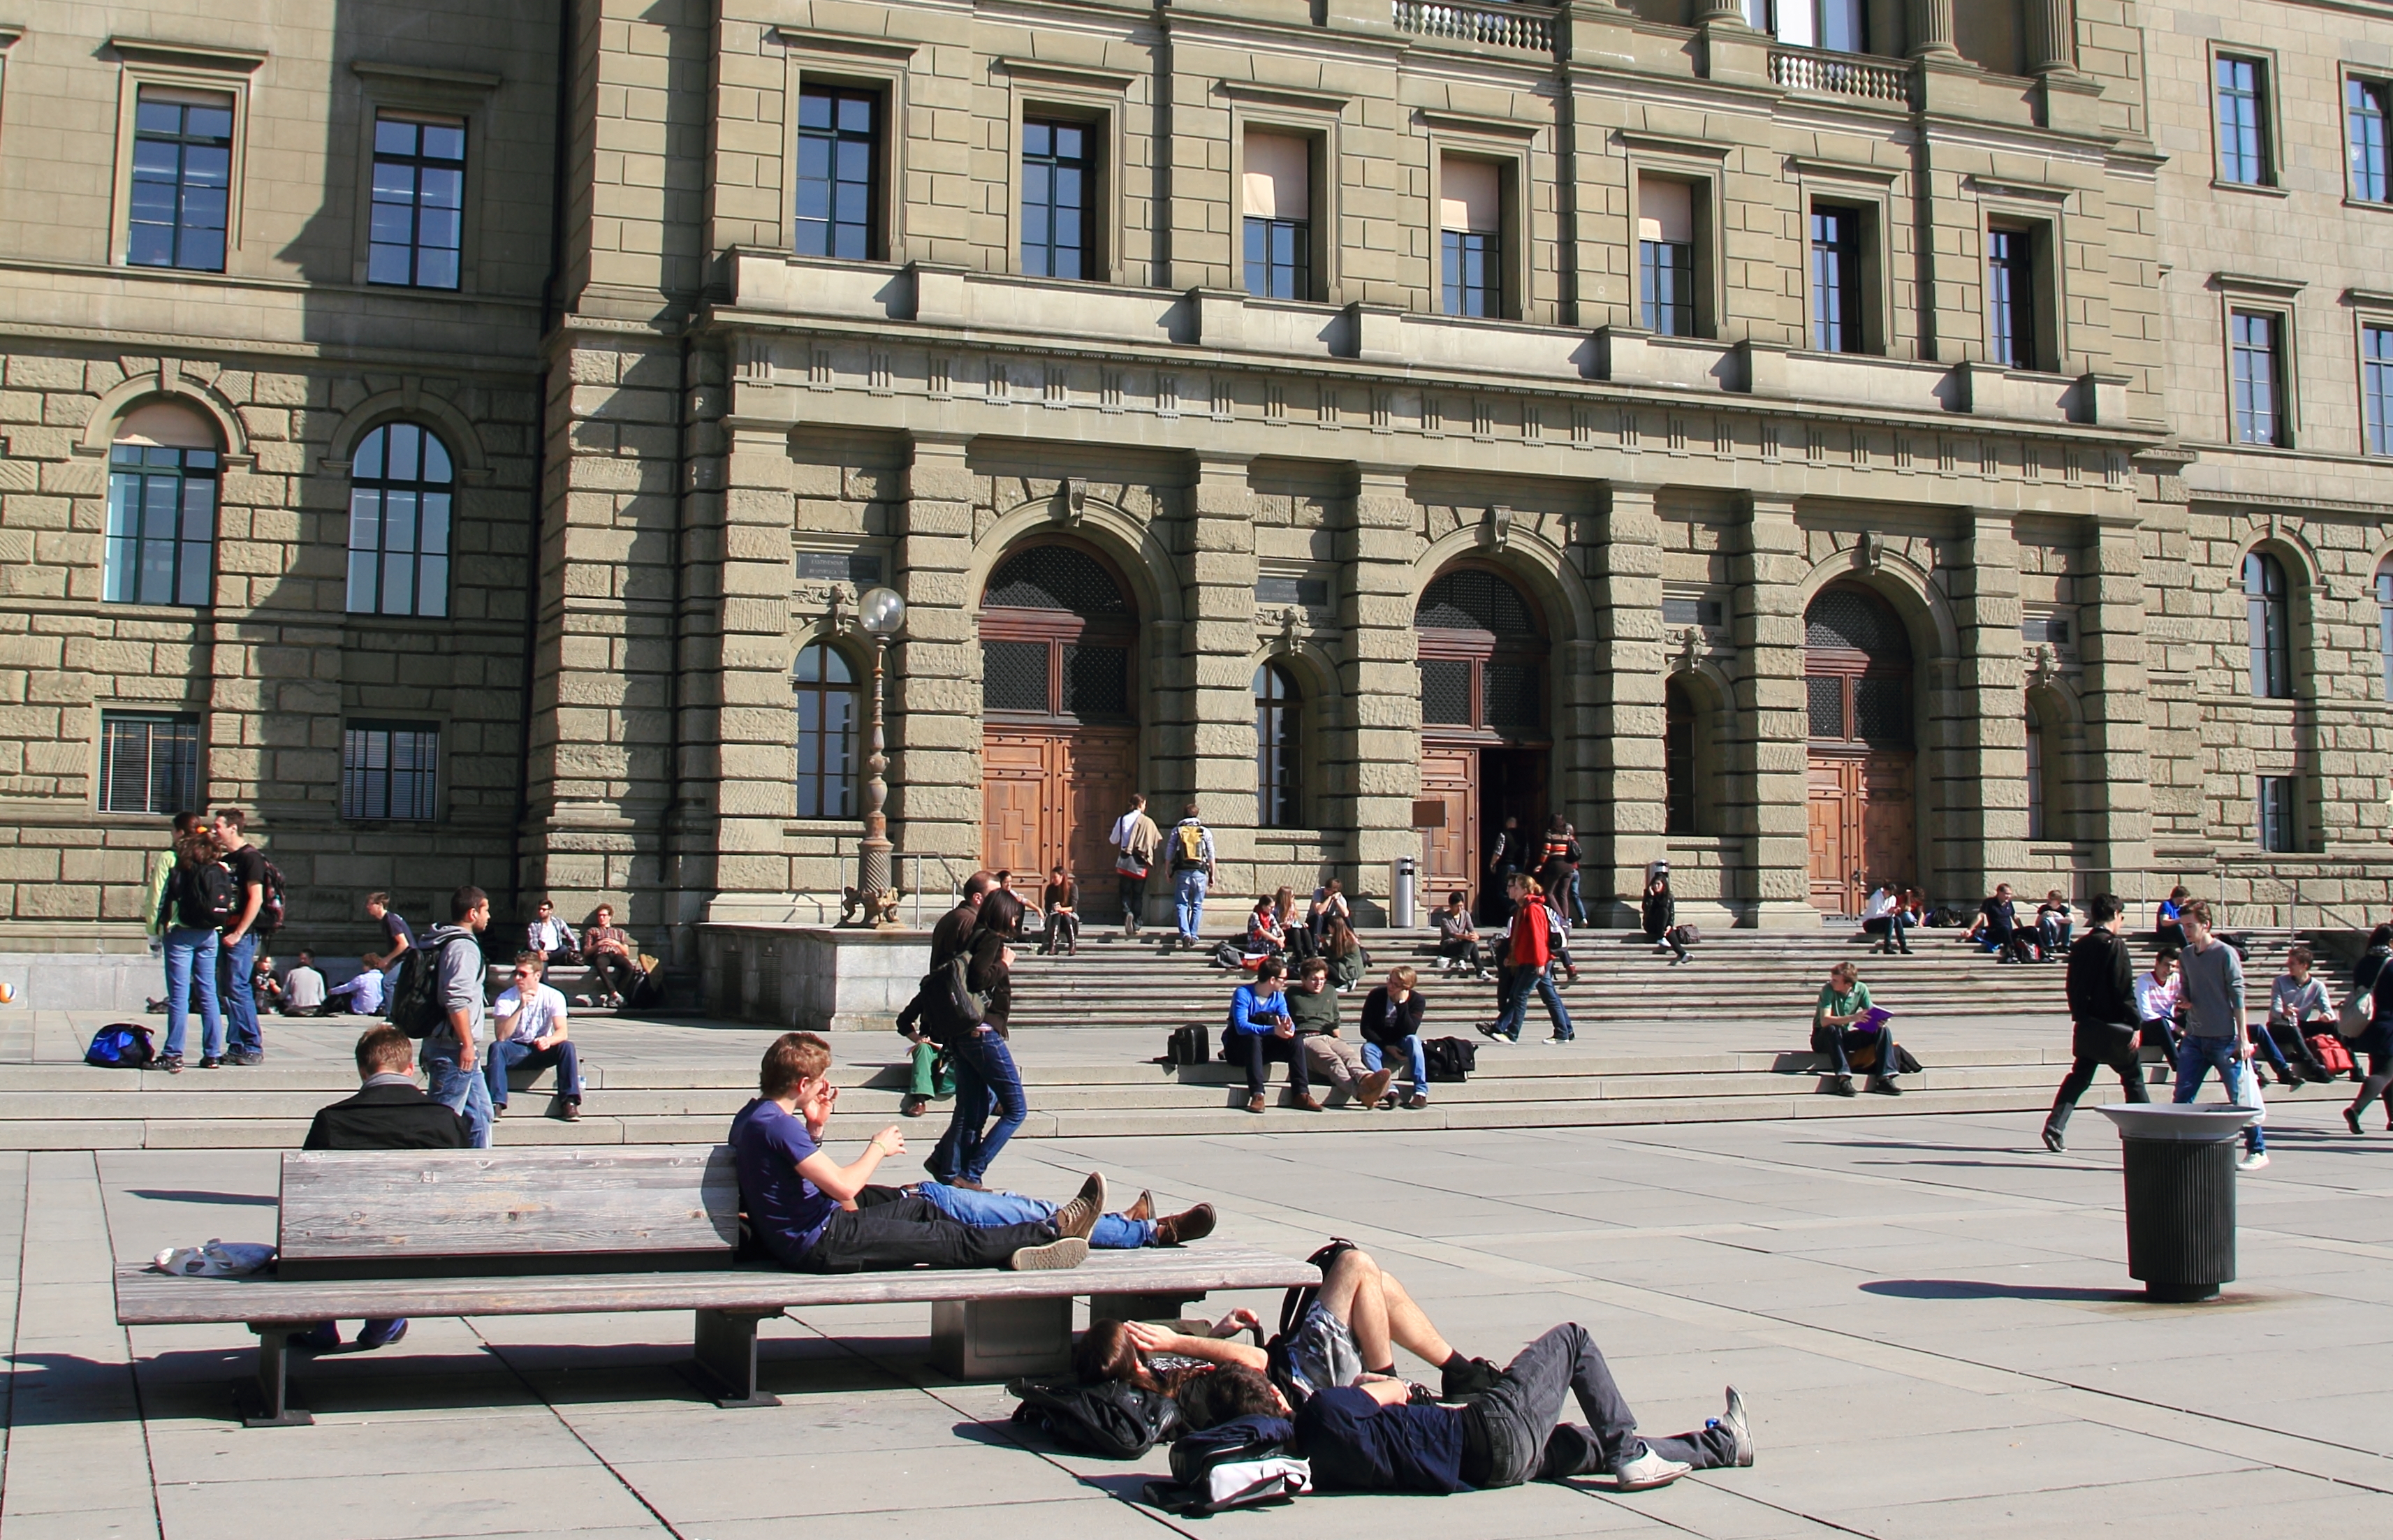 UK and Swiss universities fare well in global ranking